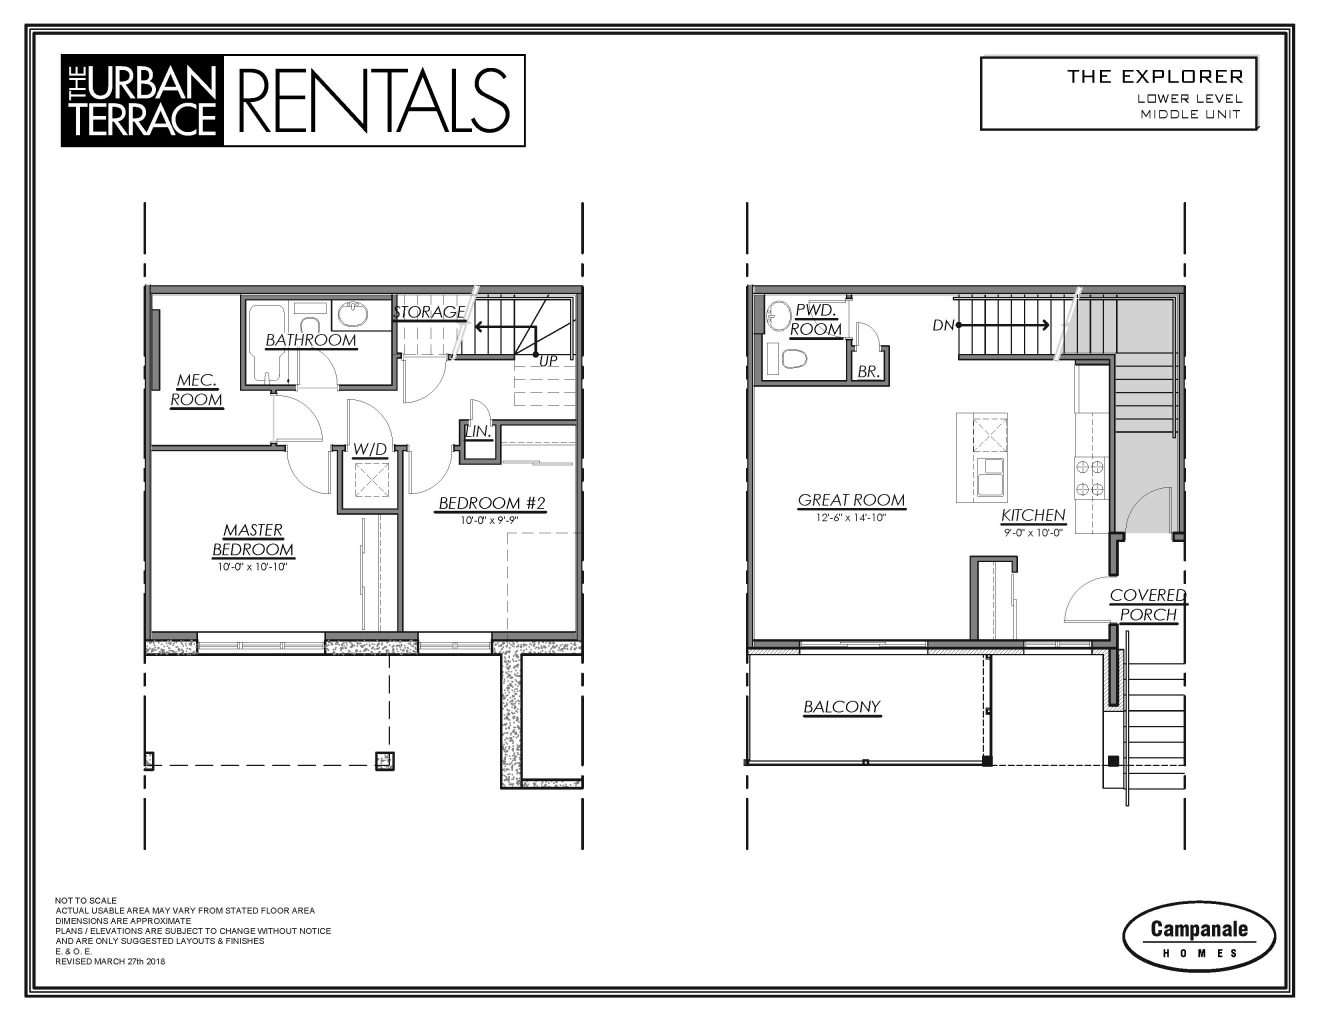 Urban_Terrace_Rental_Floorplan_Explorer